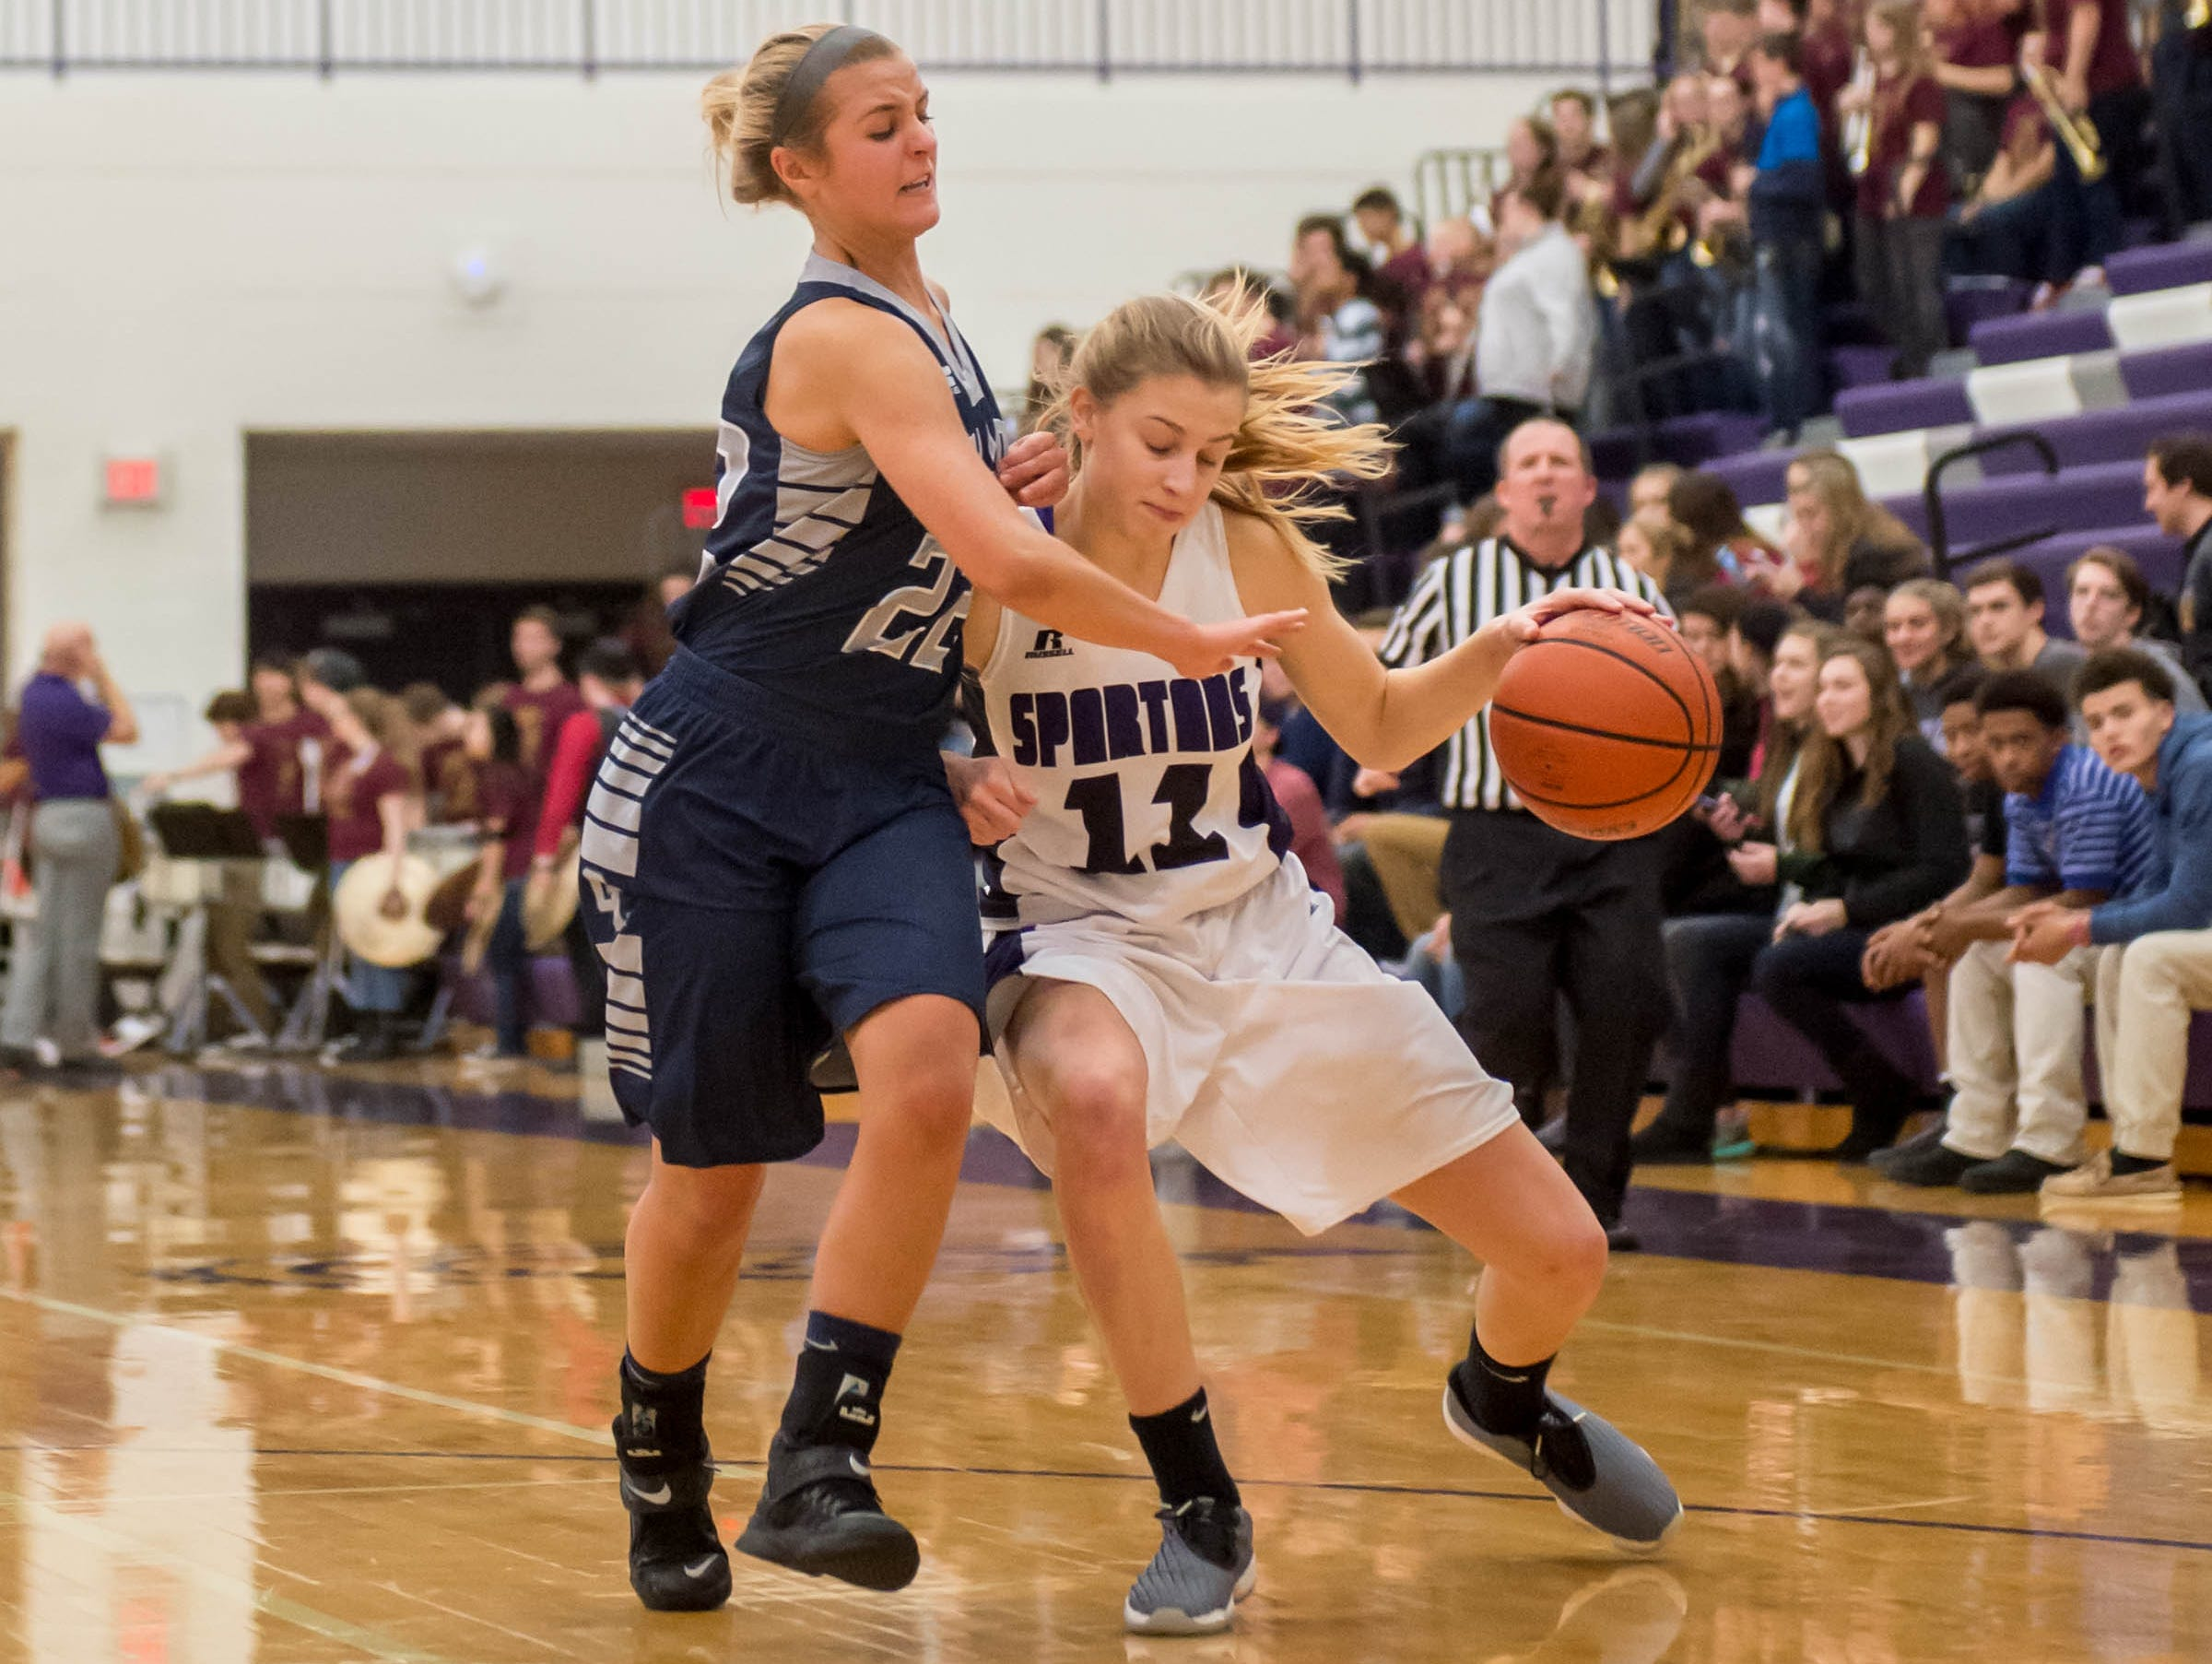 Lakeview's Ava Cook drives to the hoop against Gull Lake in Friday evening's game.